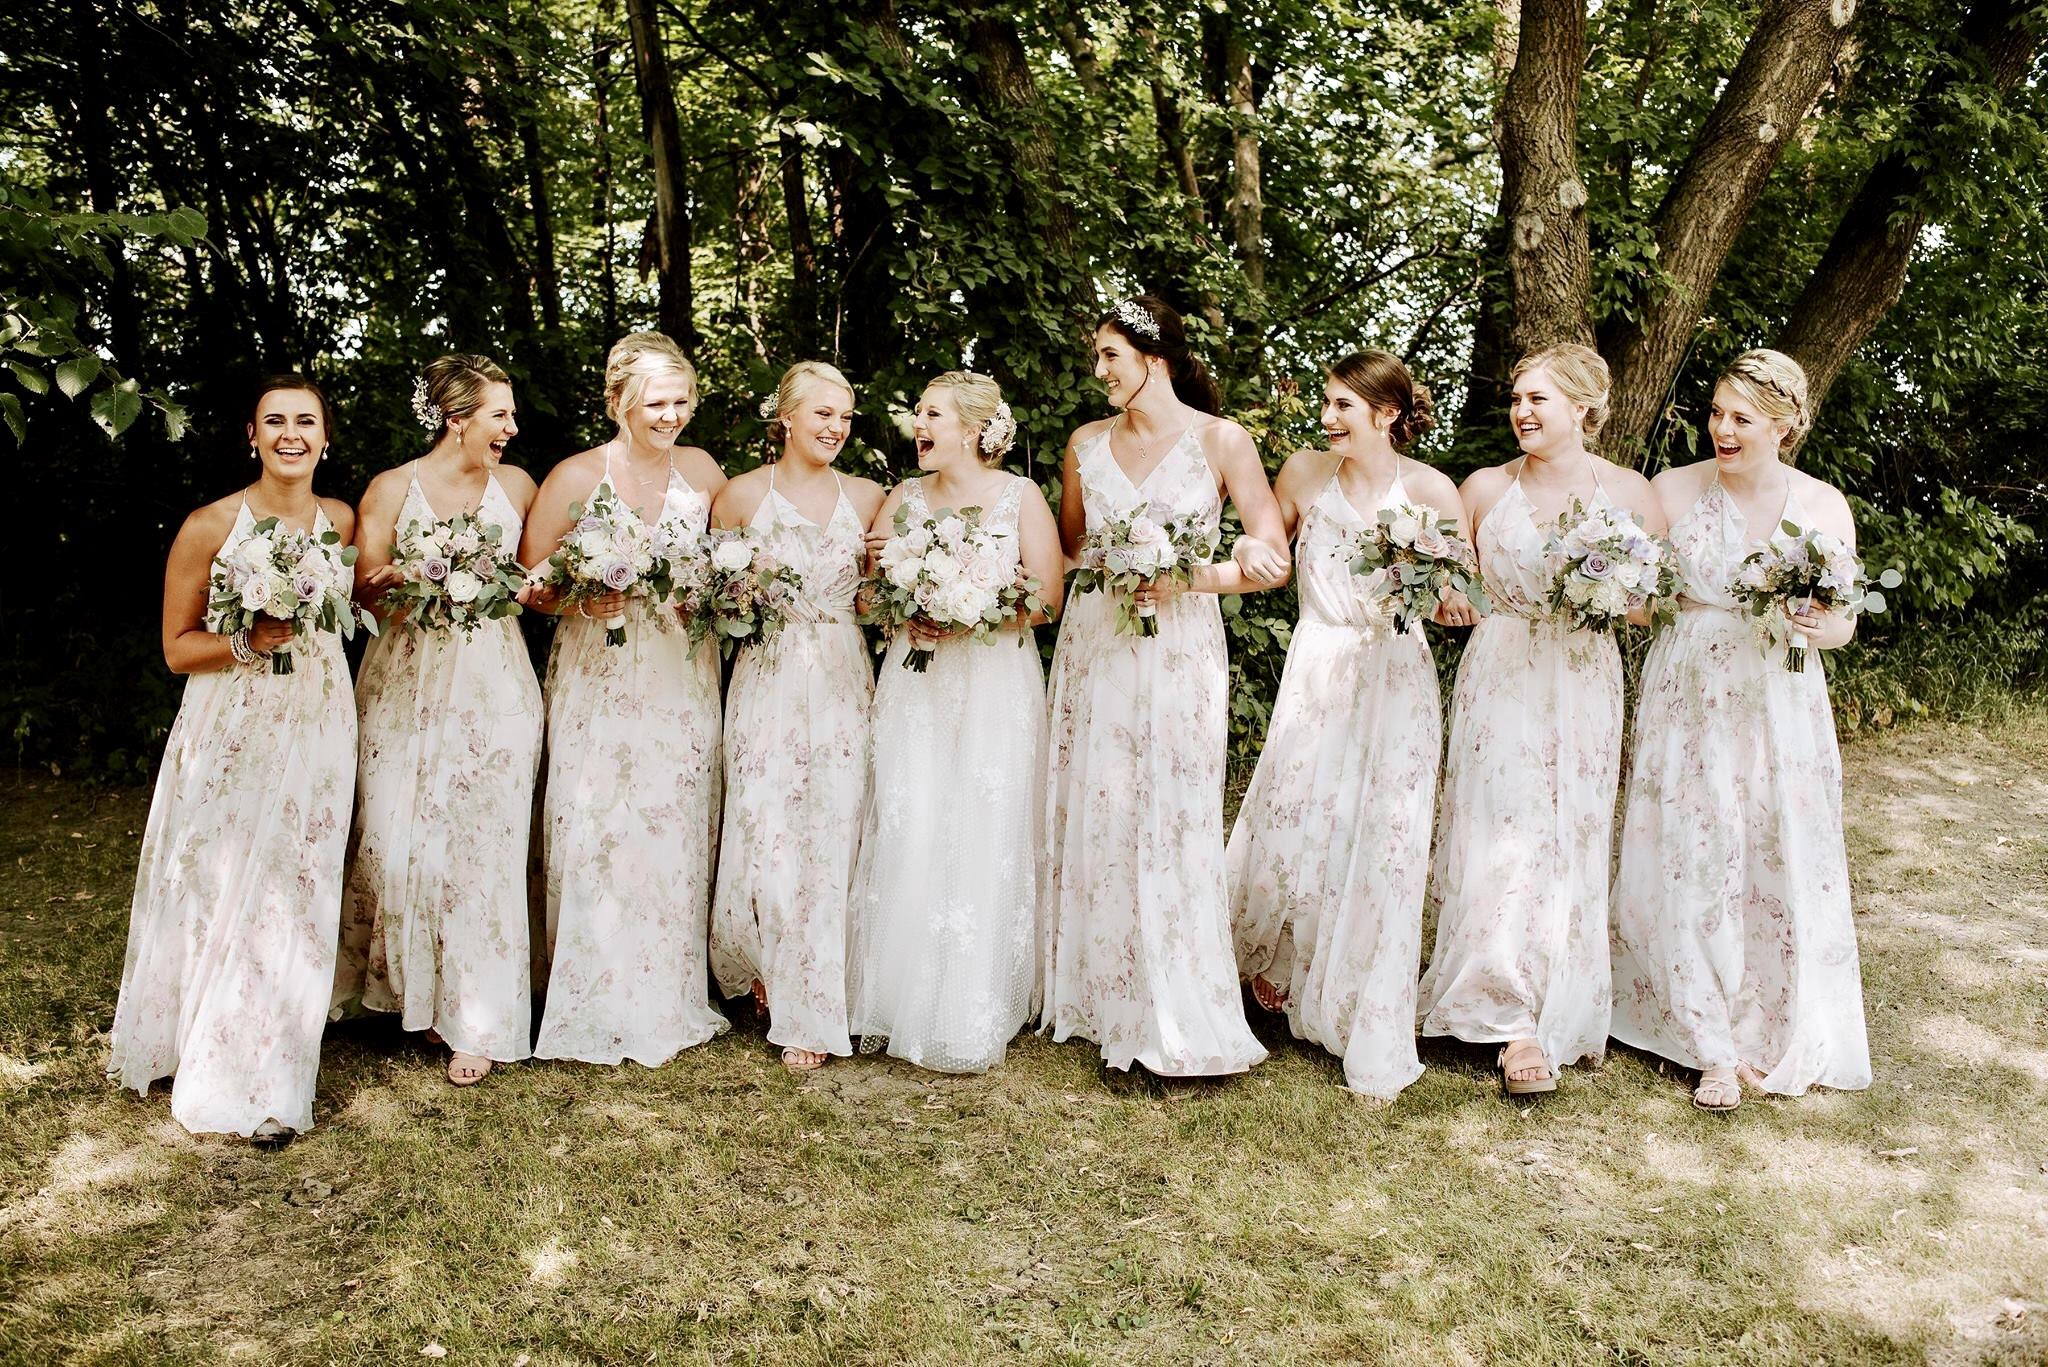 Boho Bridesmaid Dresses 5 Style Tips To Complete This Romantic Look